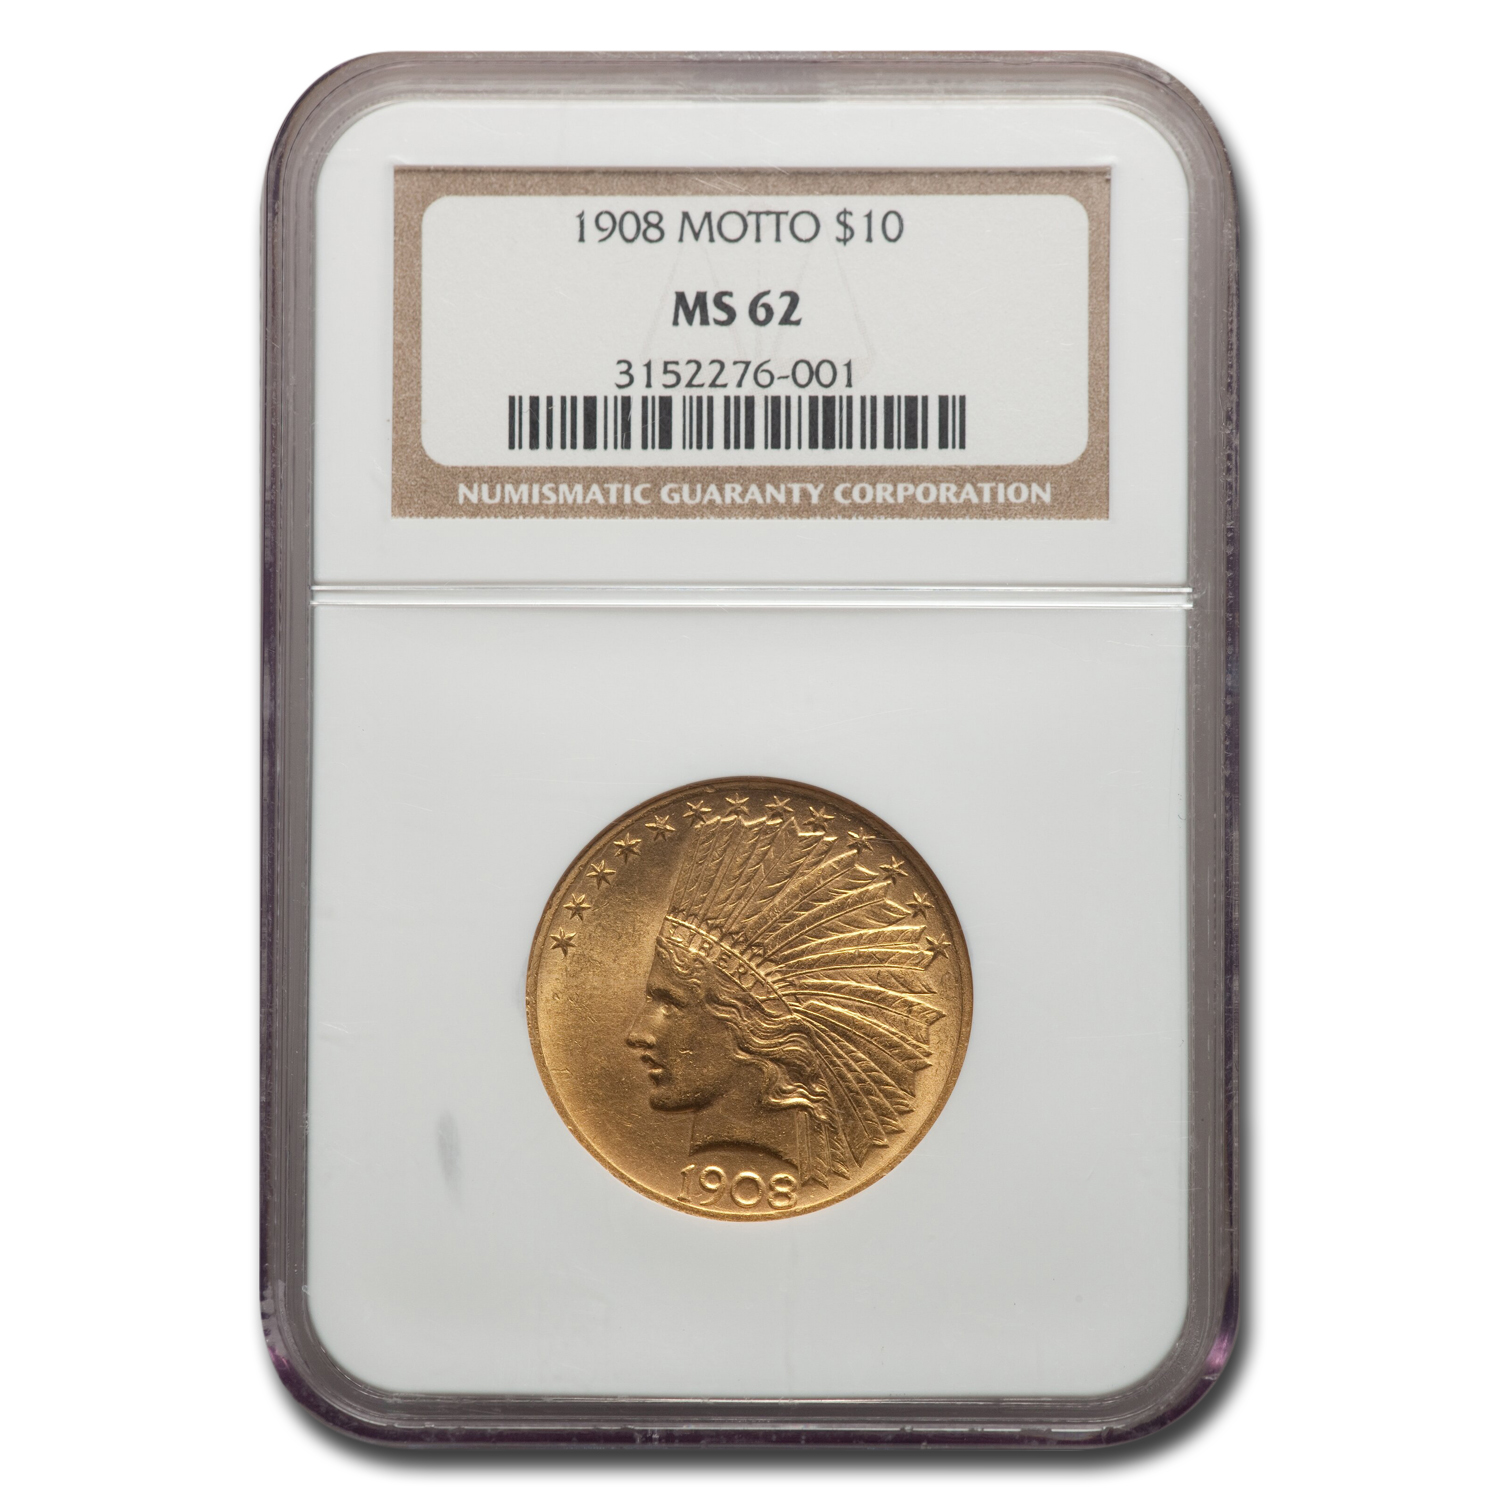 1908 $10 Indian Gold Eagle w/Motto MS-62 NGC